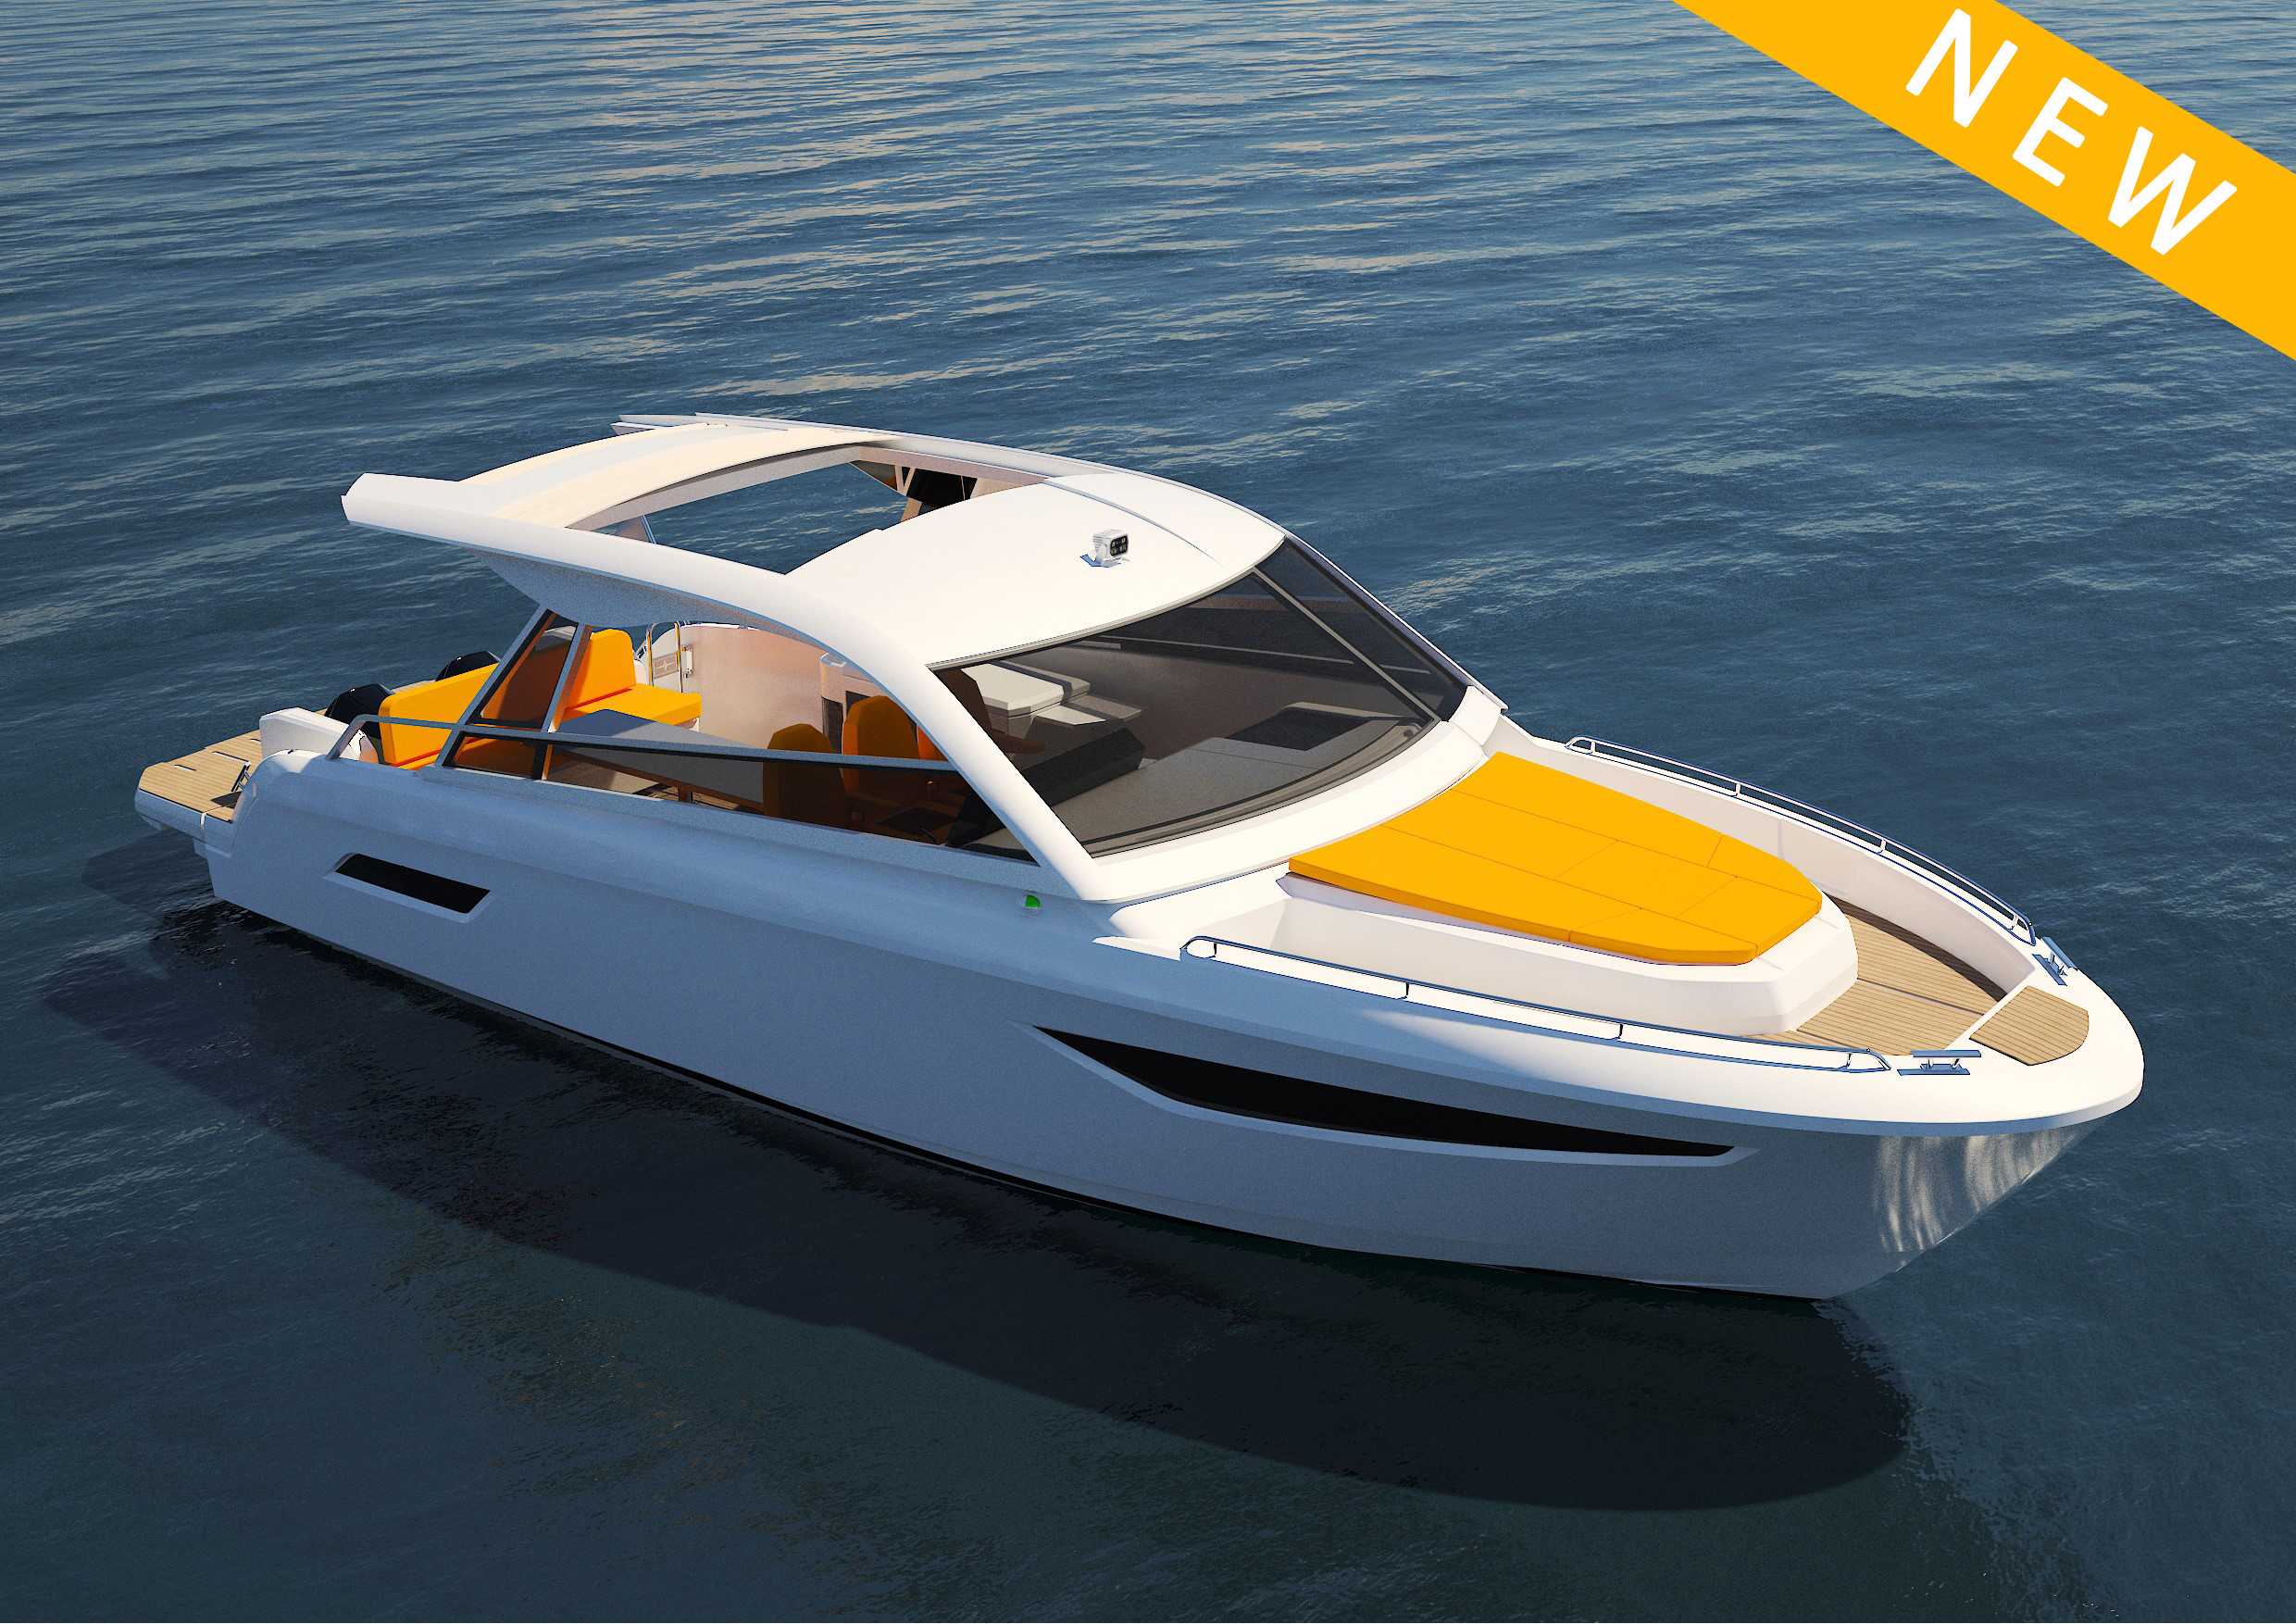 THE NEW BAVARIA VIDA 33